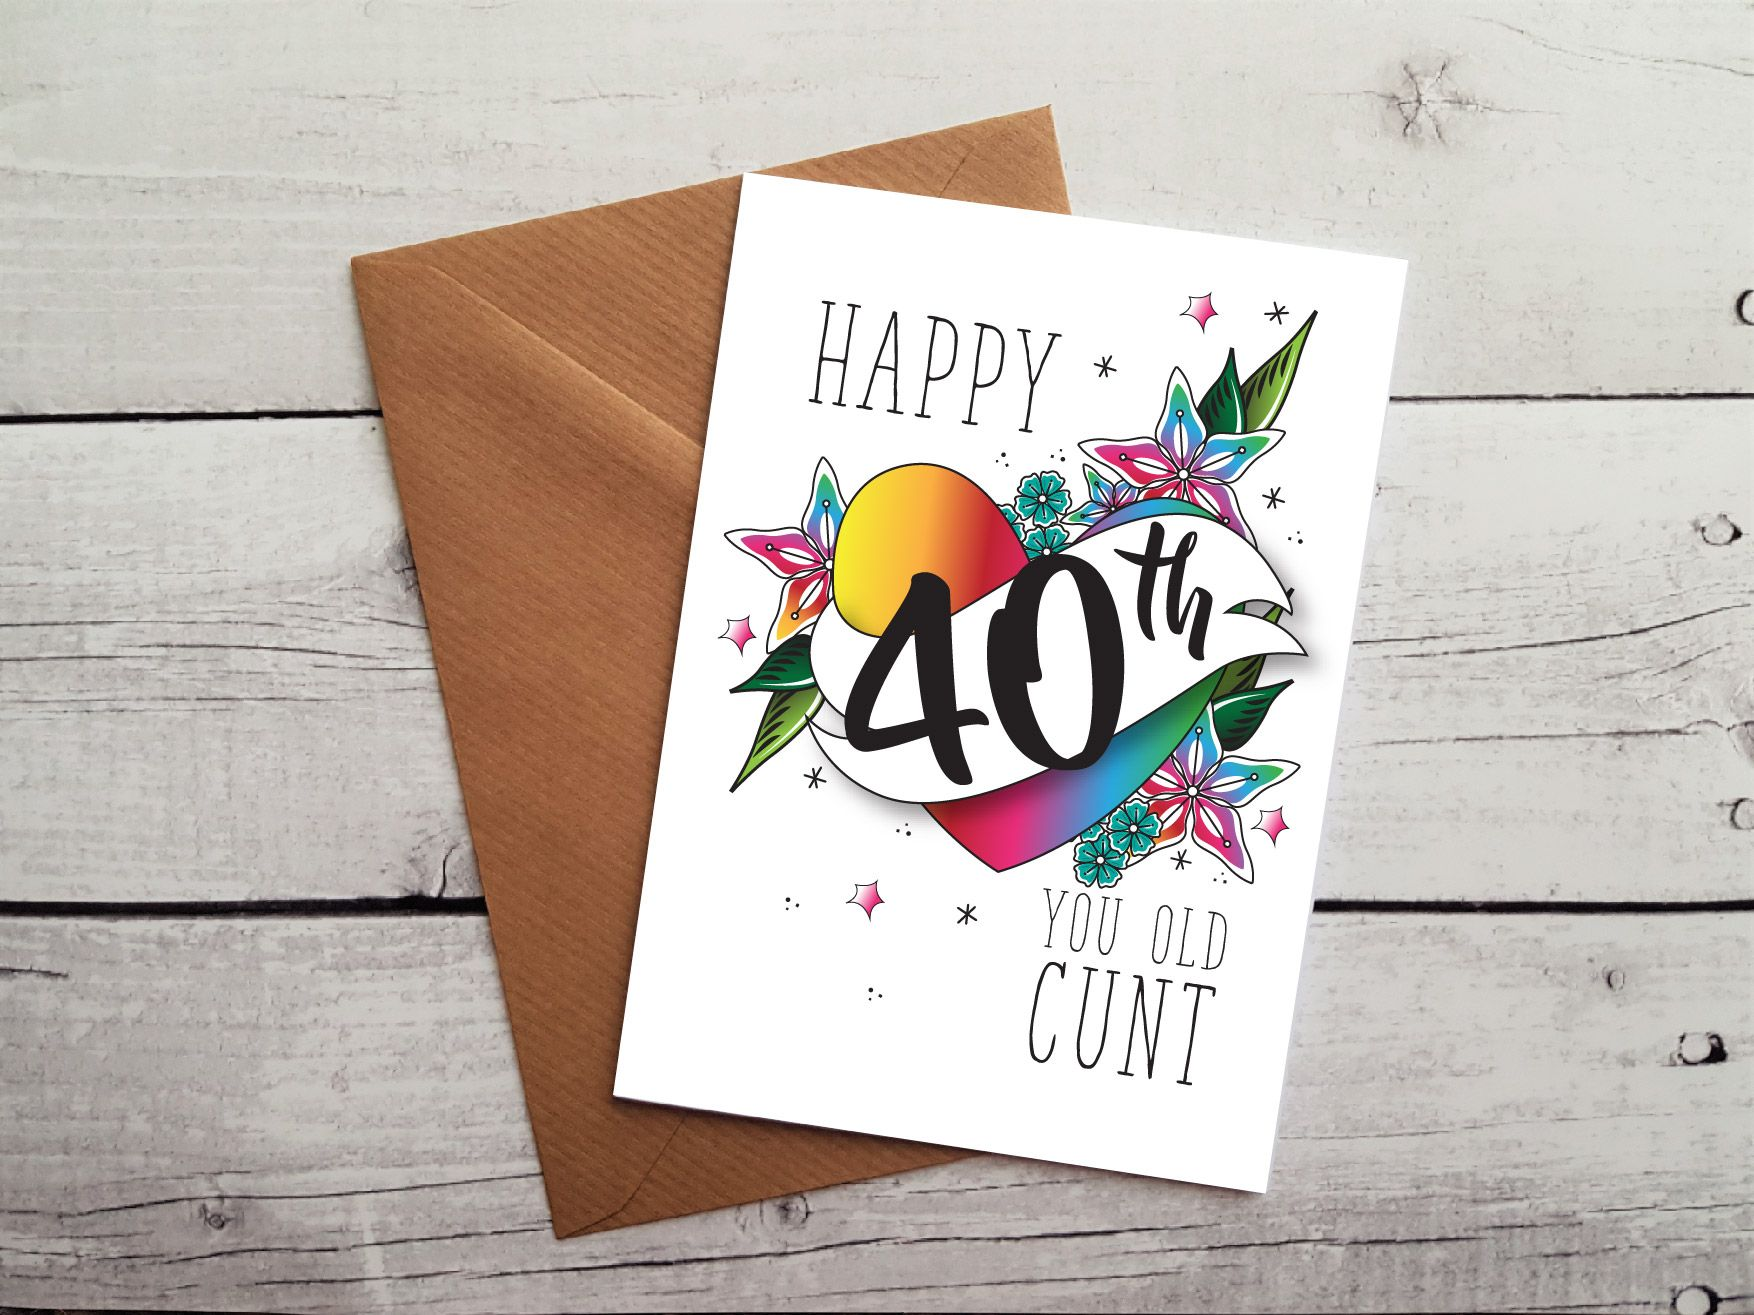 Insulting 40th Birthday Card Happy 40th You Old Cunt 40th